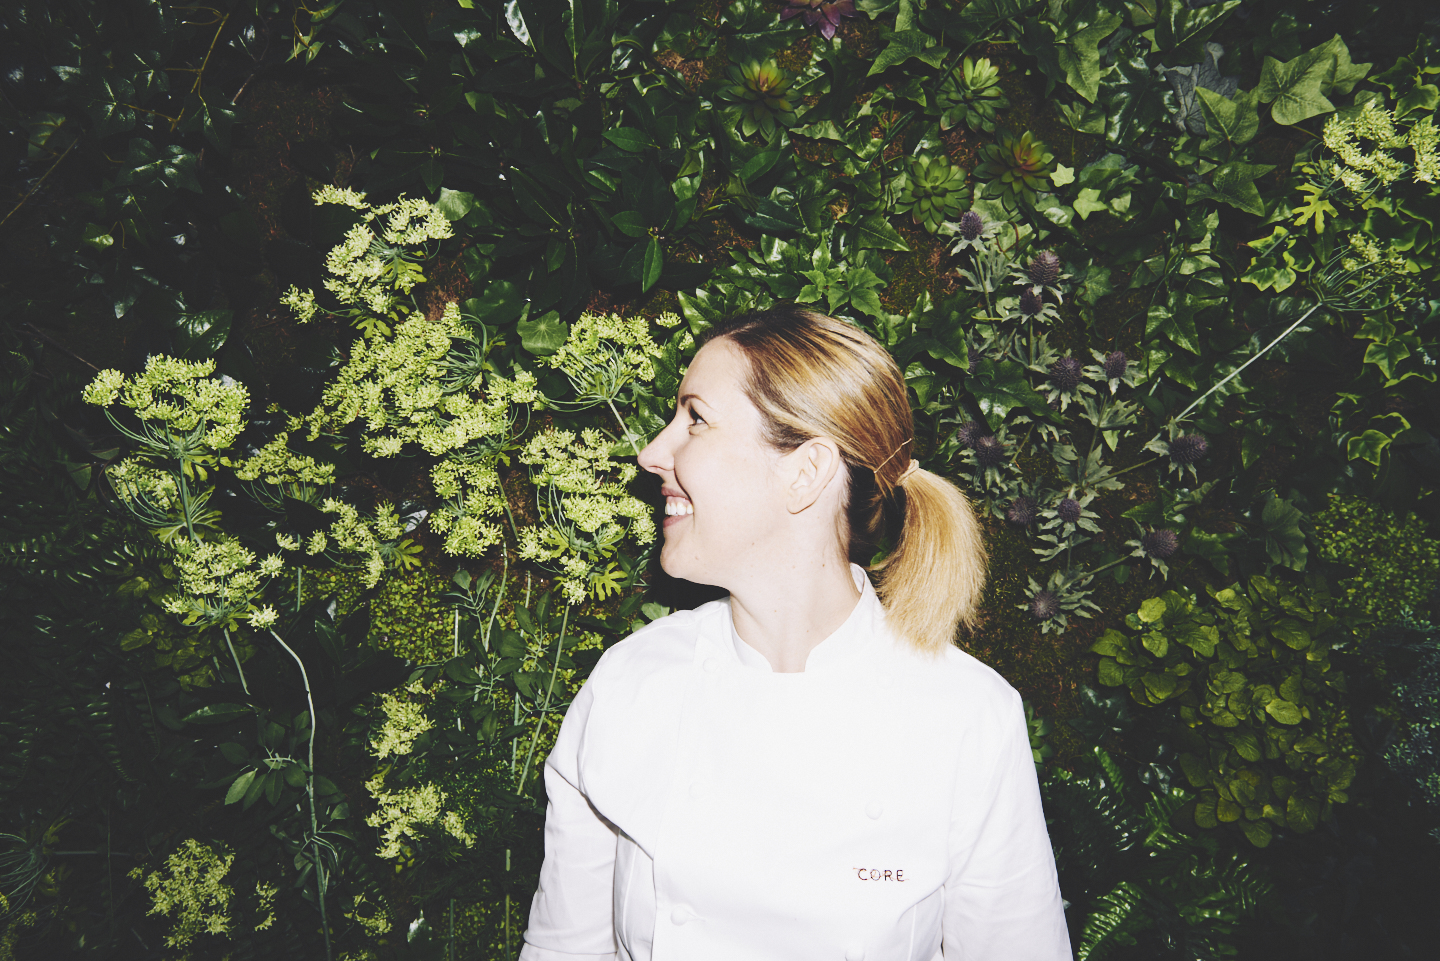 London Star Clare Smyth No Longer Holds 'World's Best Female Chef' Title